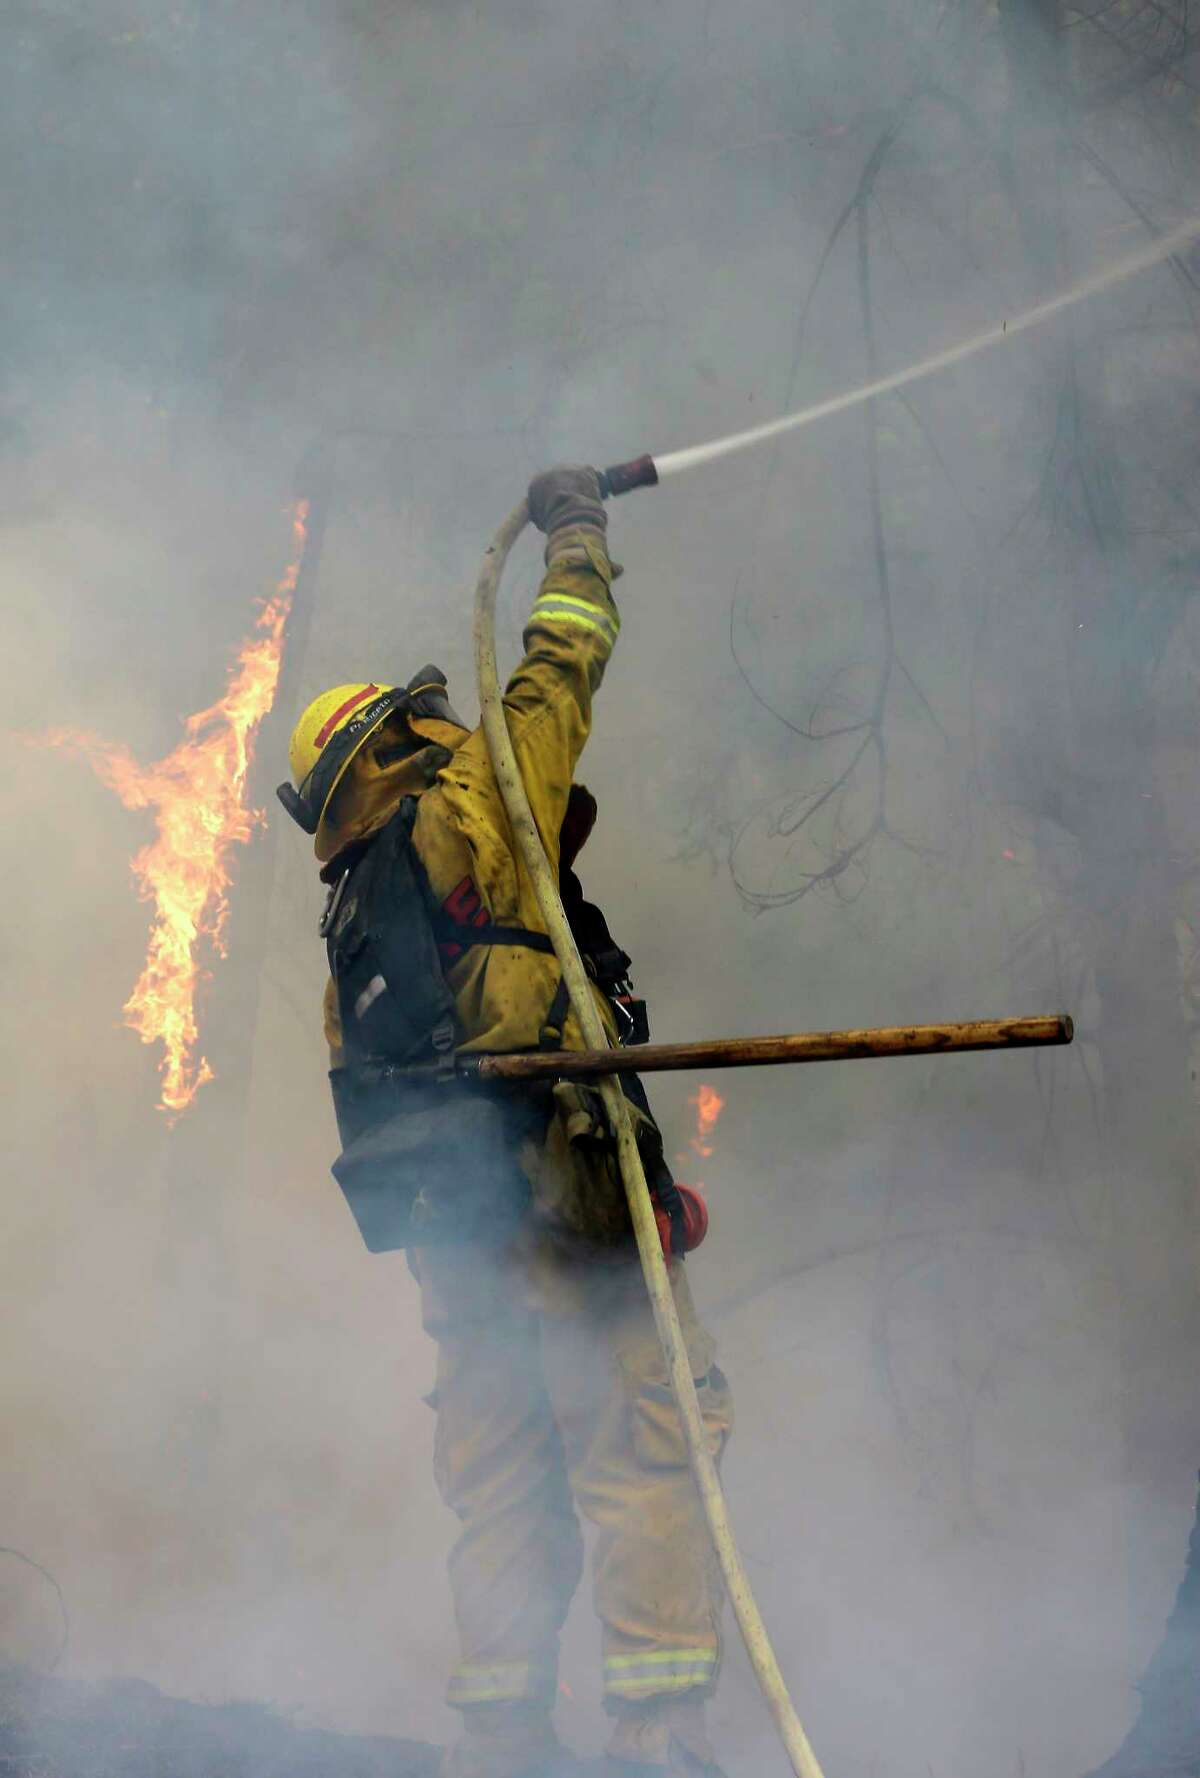 A firefighter puts water on a burning tree as flames approach a containment line, while fighting the King fire near Fresh Pond, Calif., Thursday, Sept. 18, 2014.